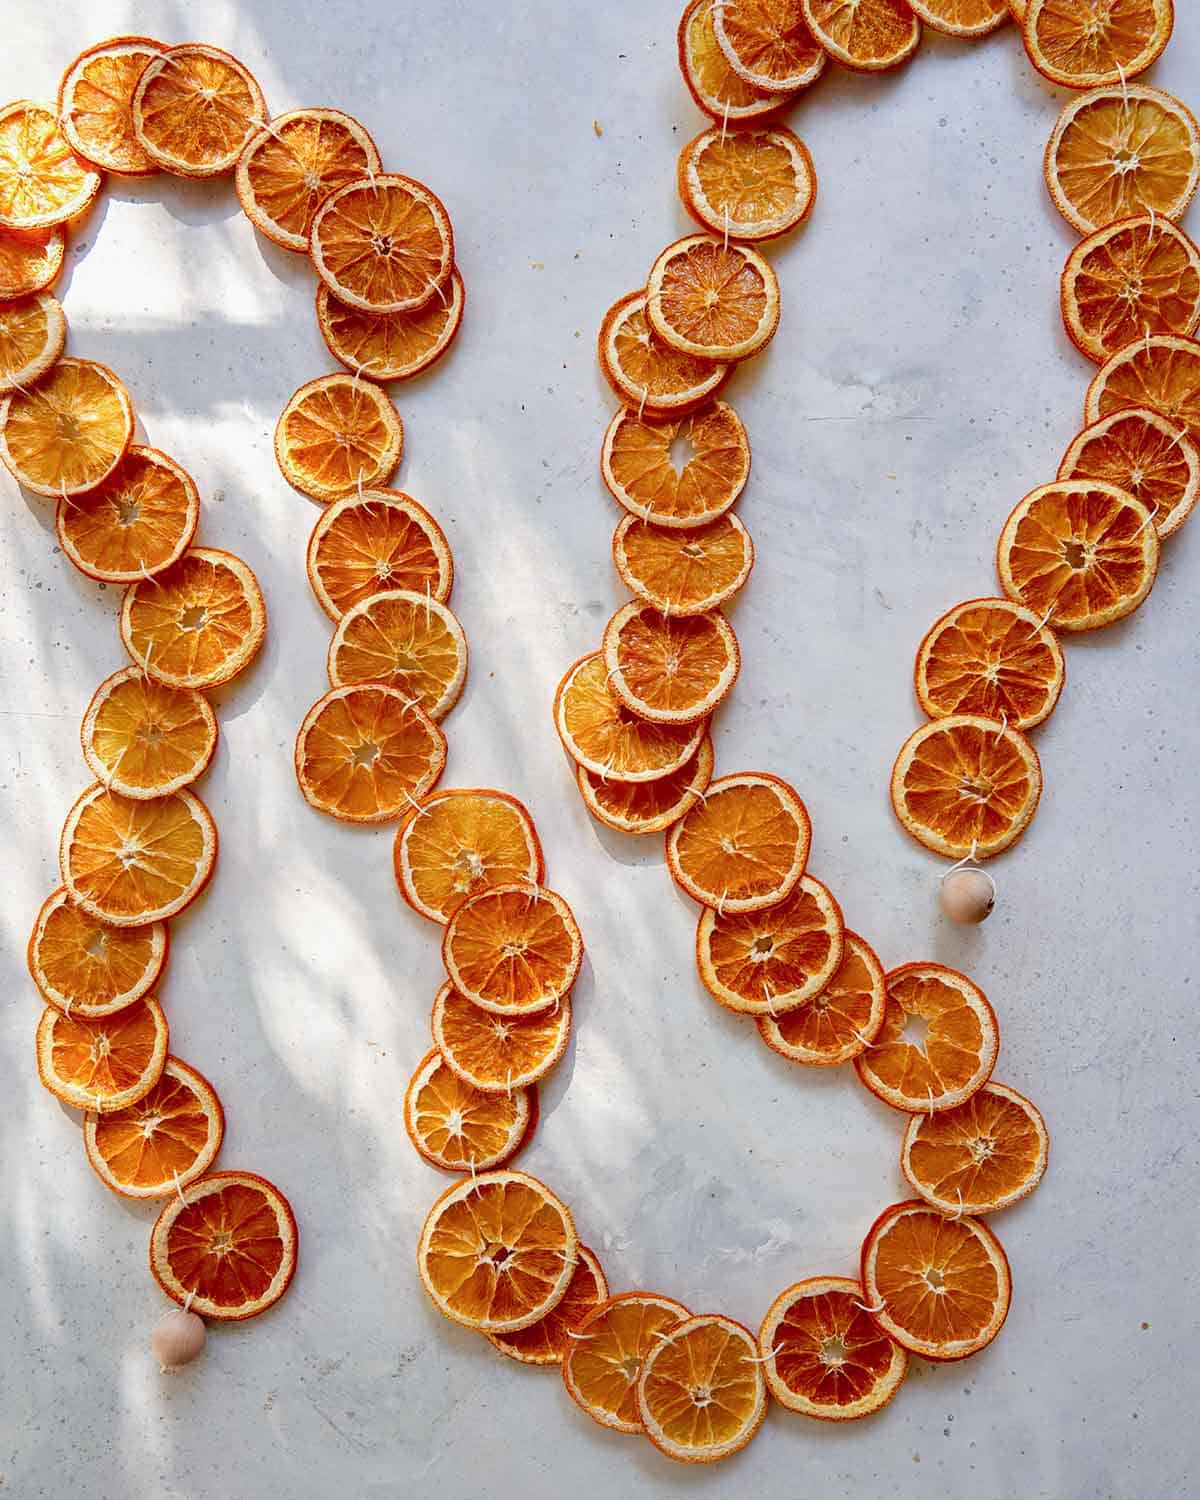 A dehydrated citrus garland laid out on a table.